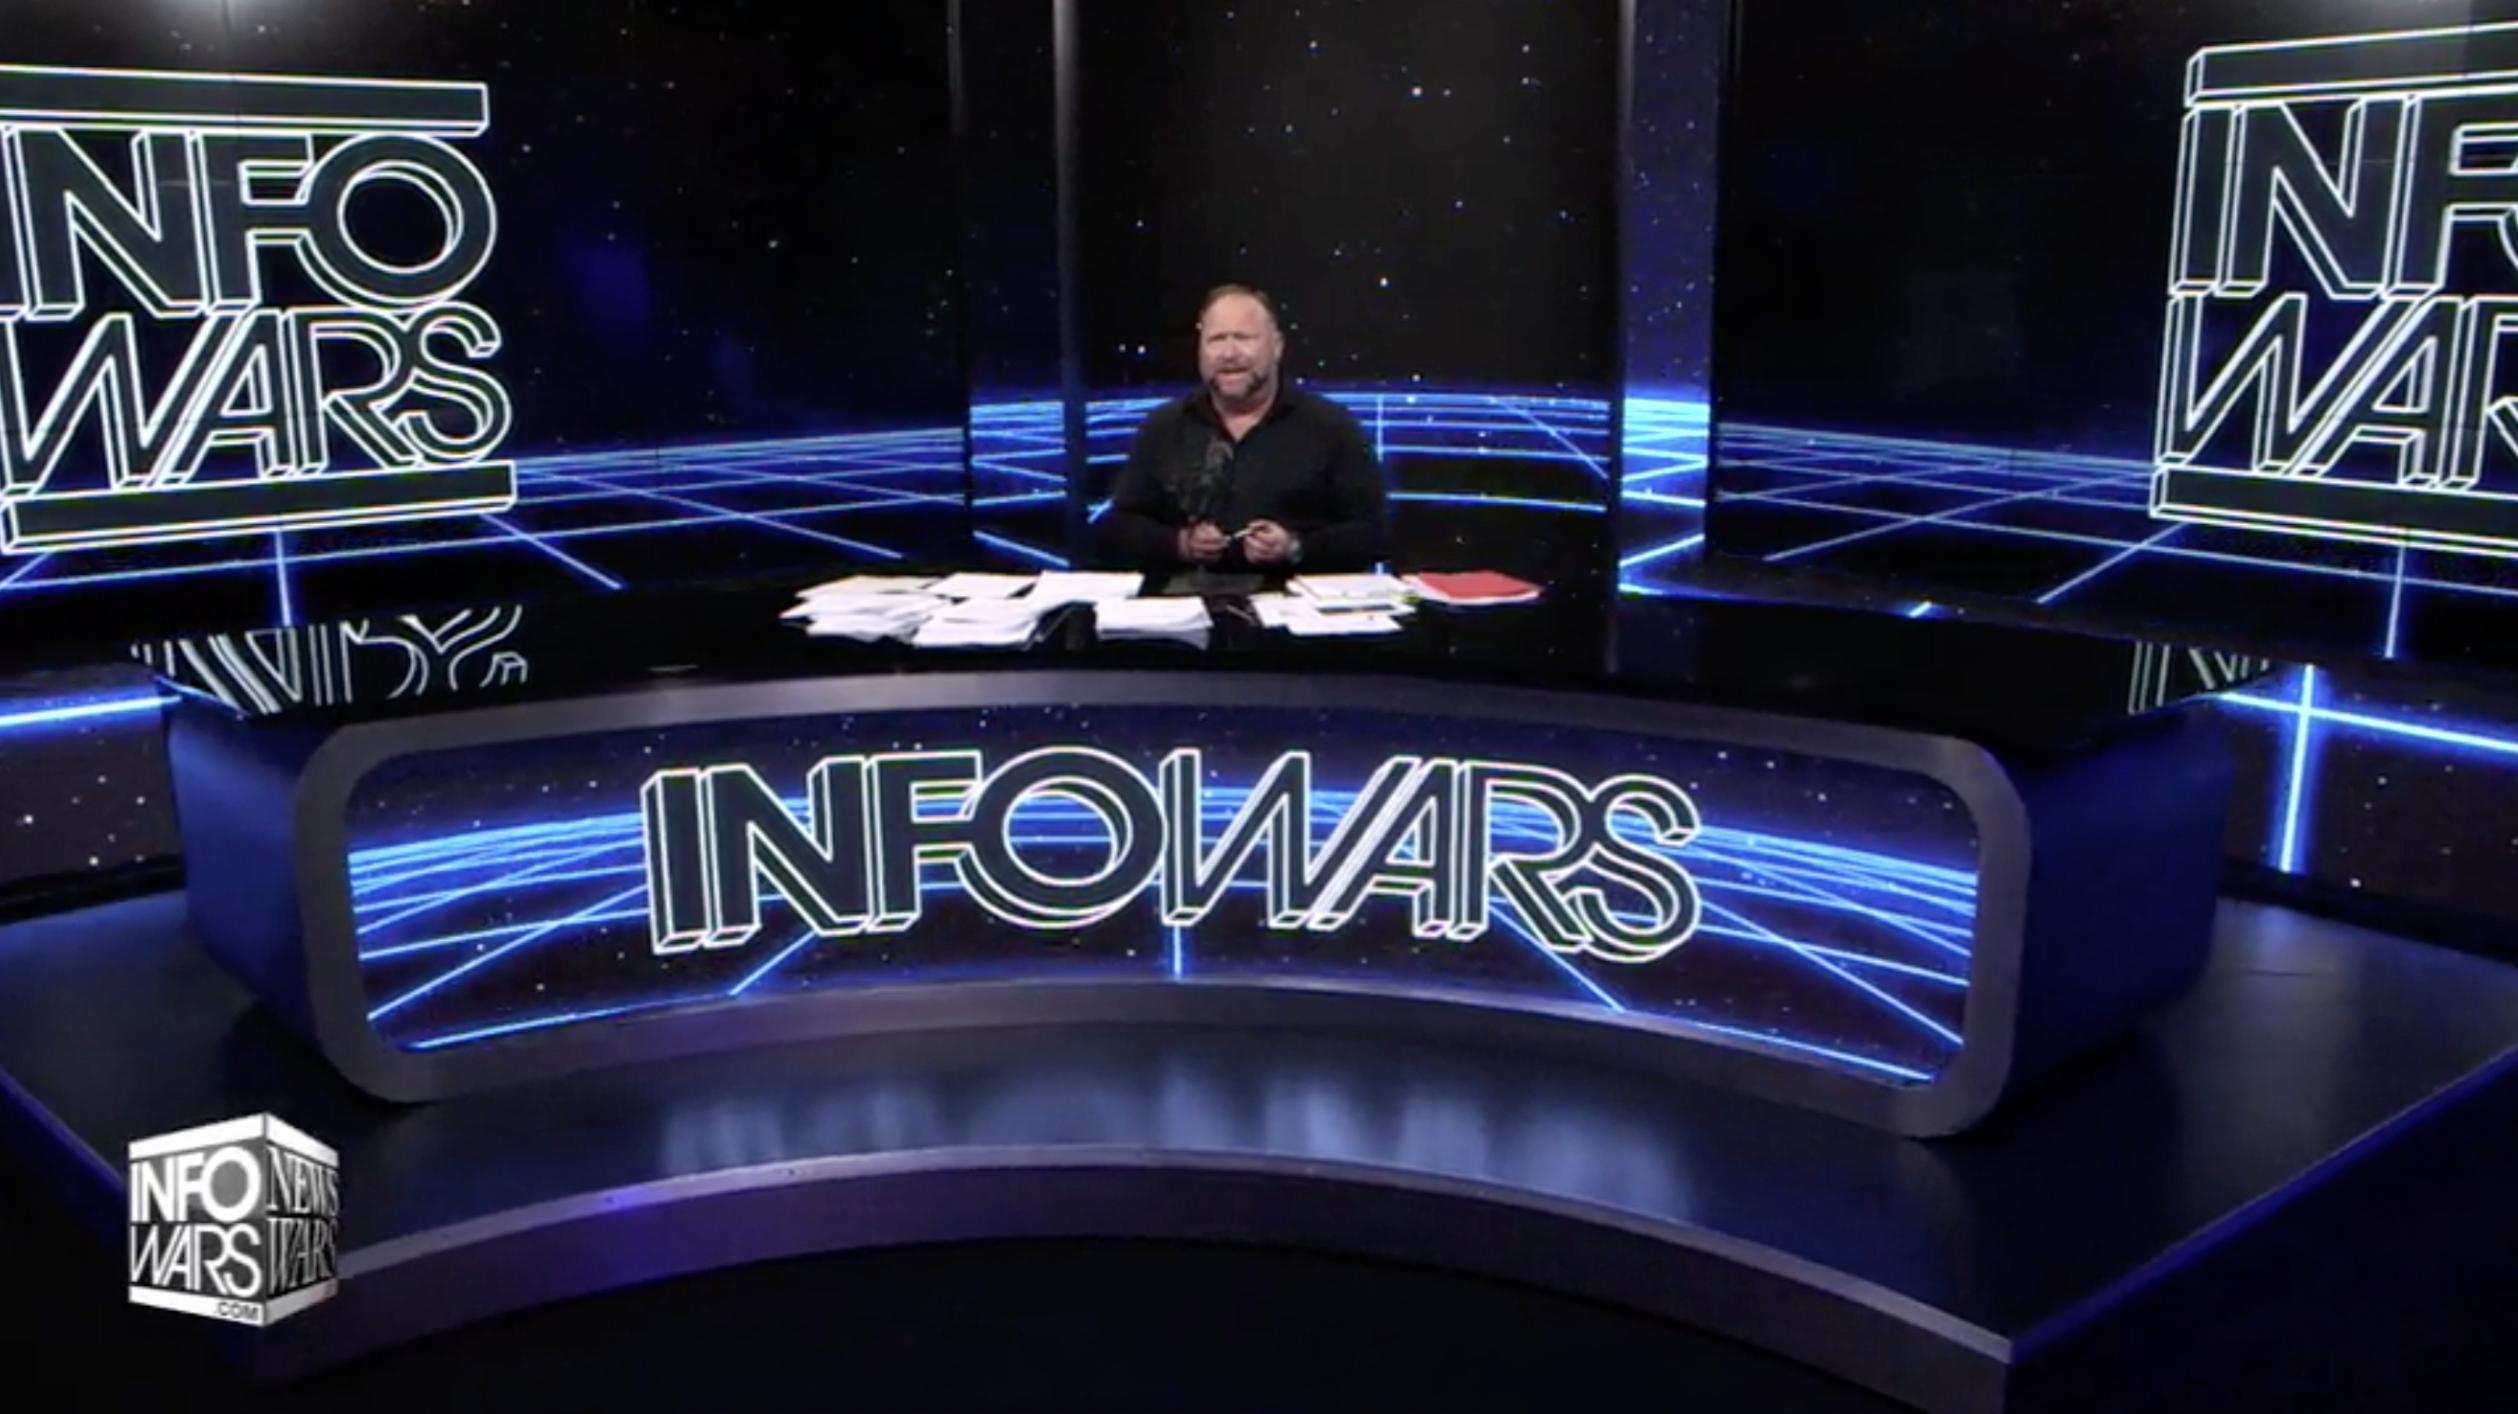 Alex Jones Infowars Studio The Resistance Video EXZM Zack Mount January 12th 2021